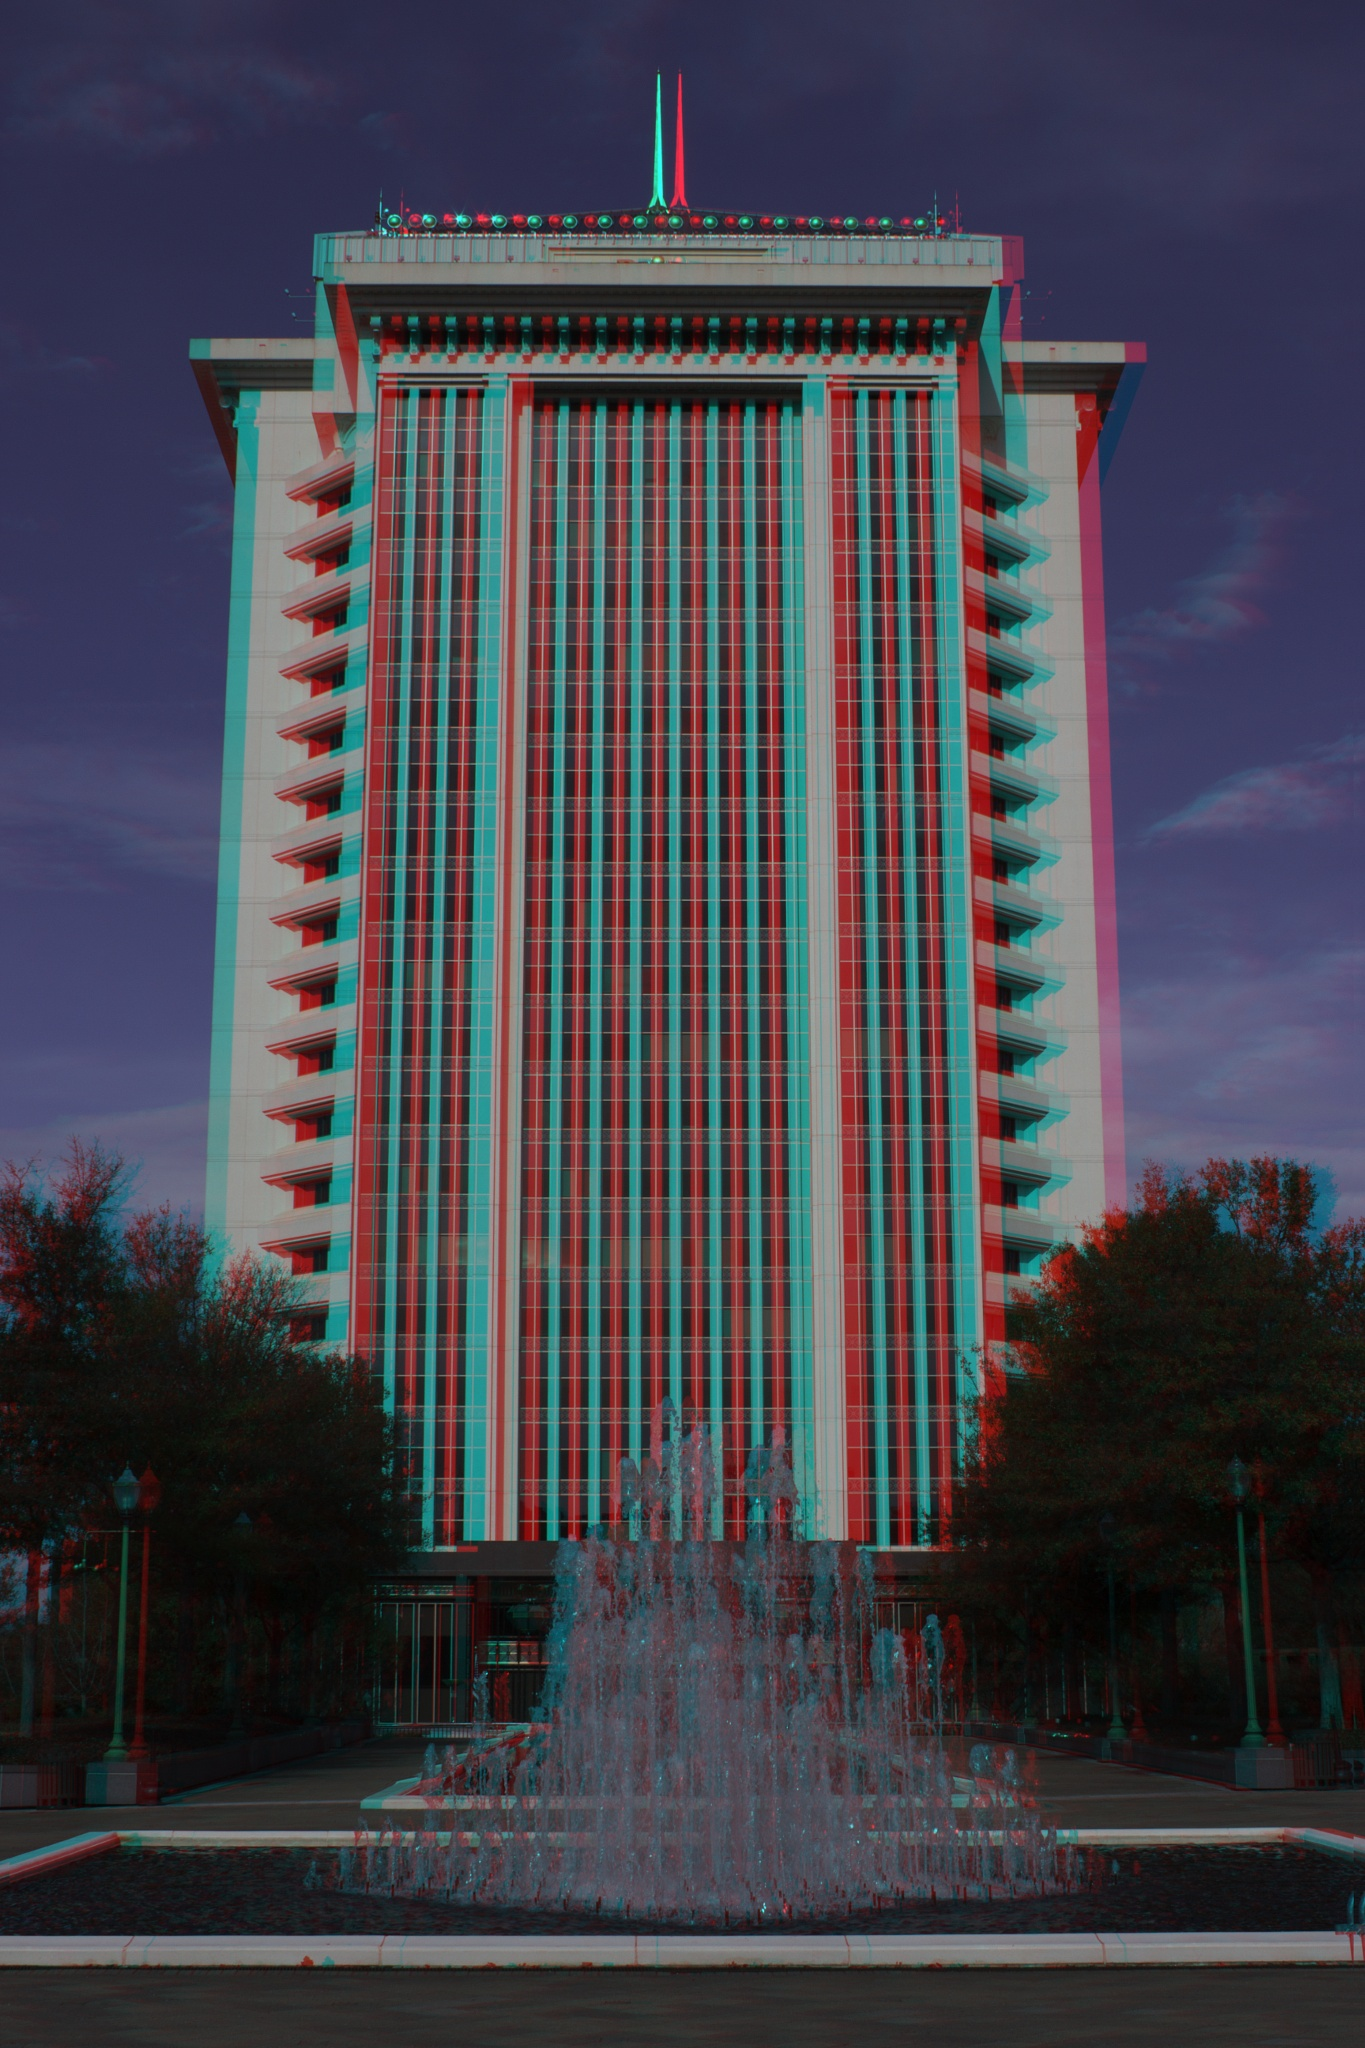 3D RSA Tower by Marcus Adams